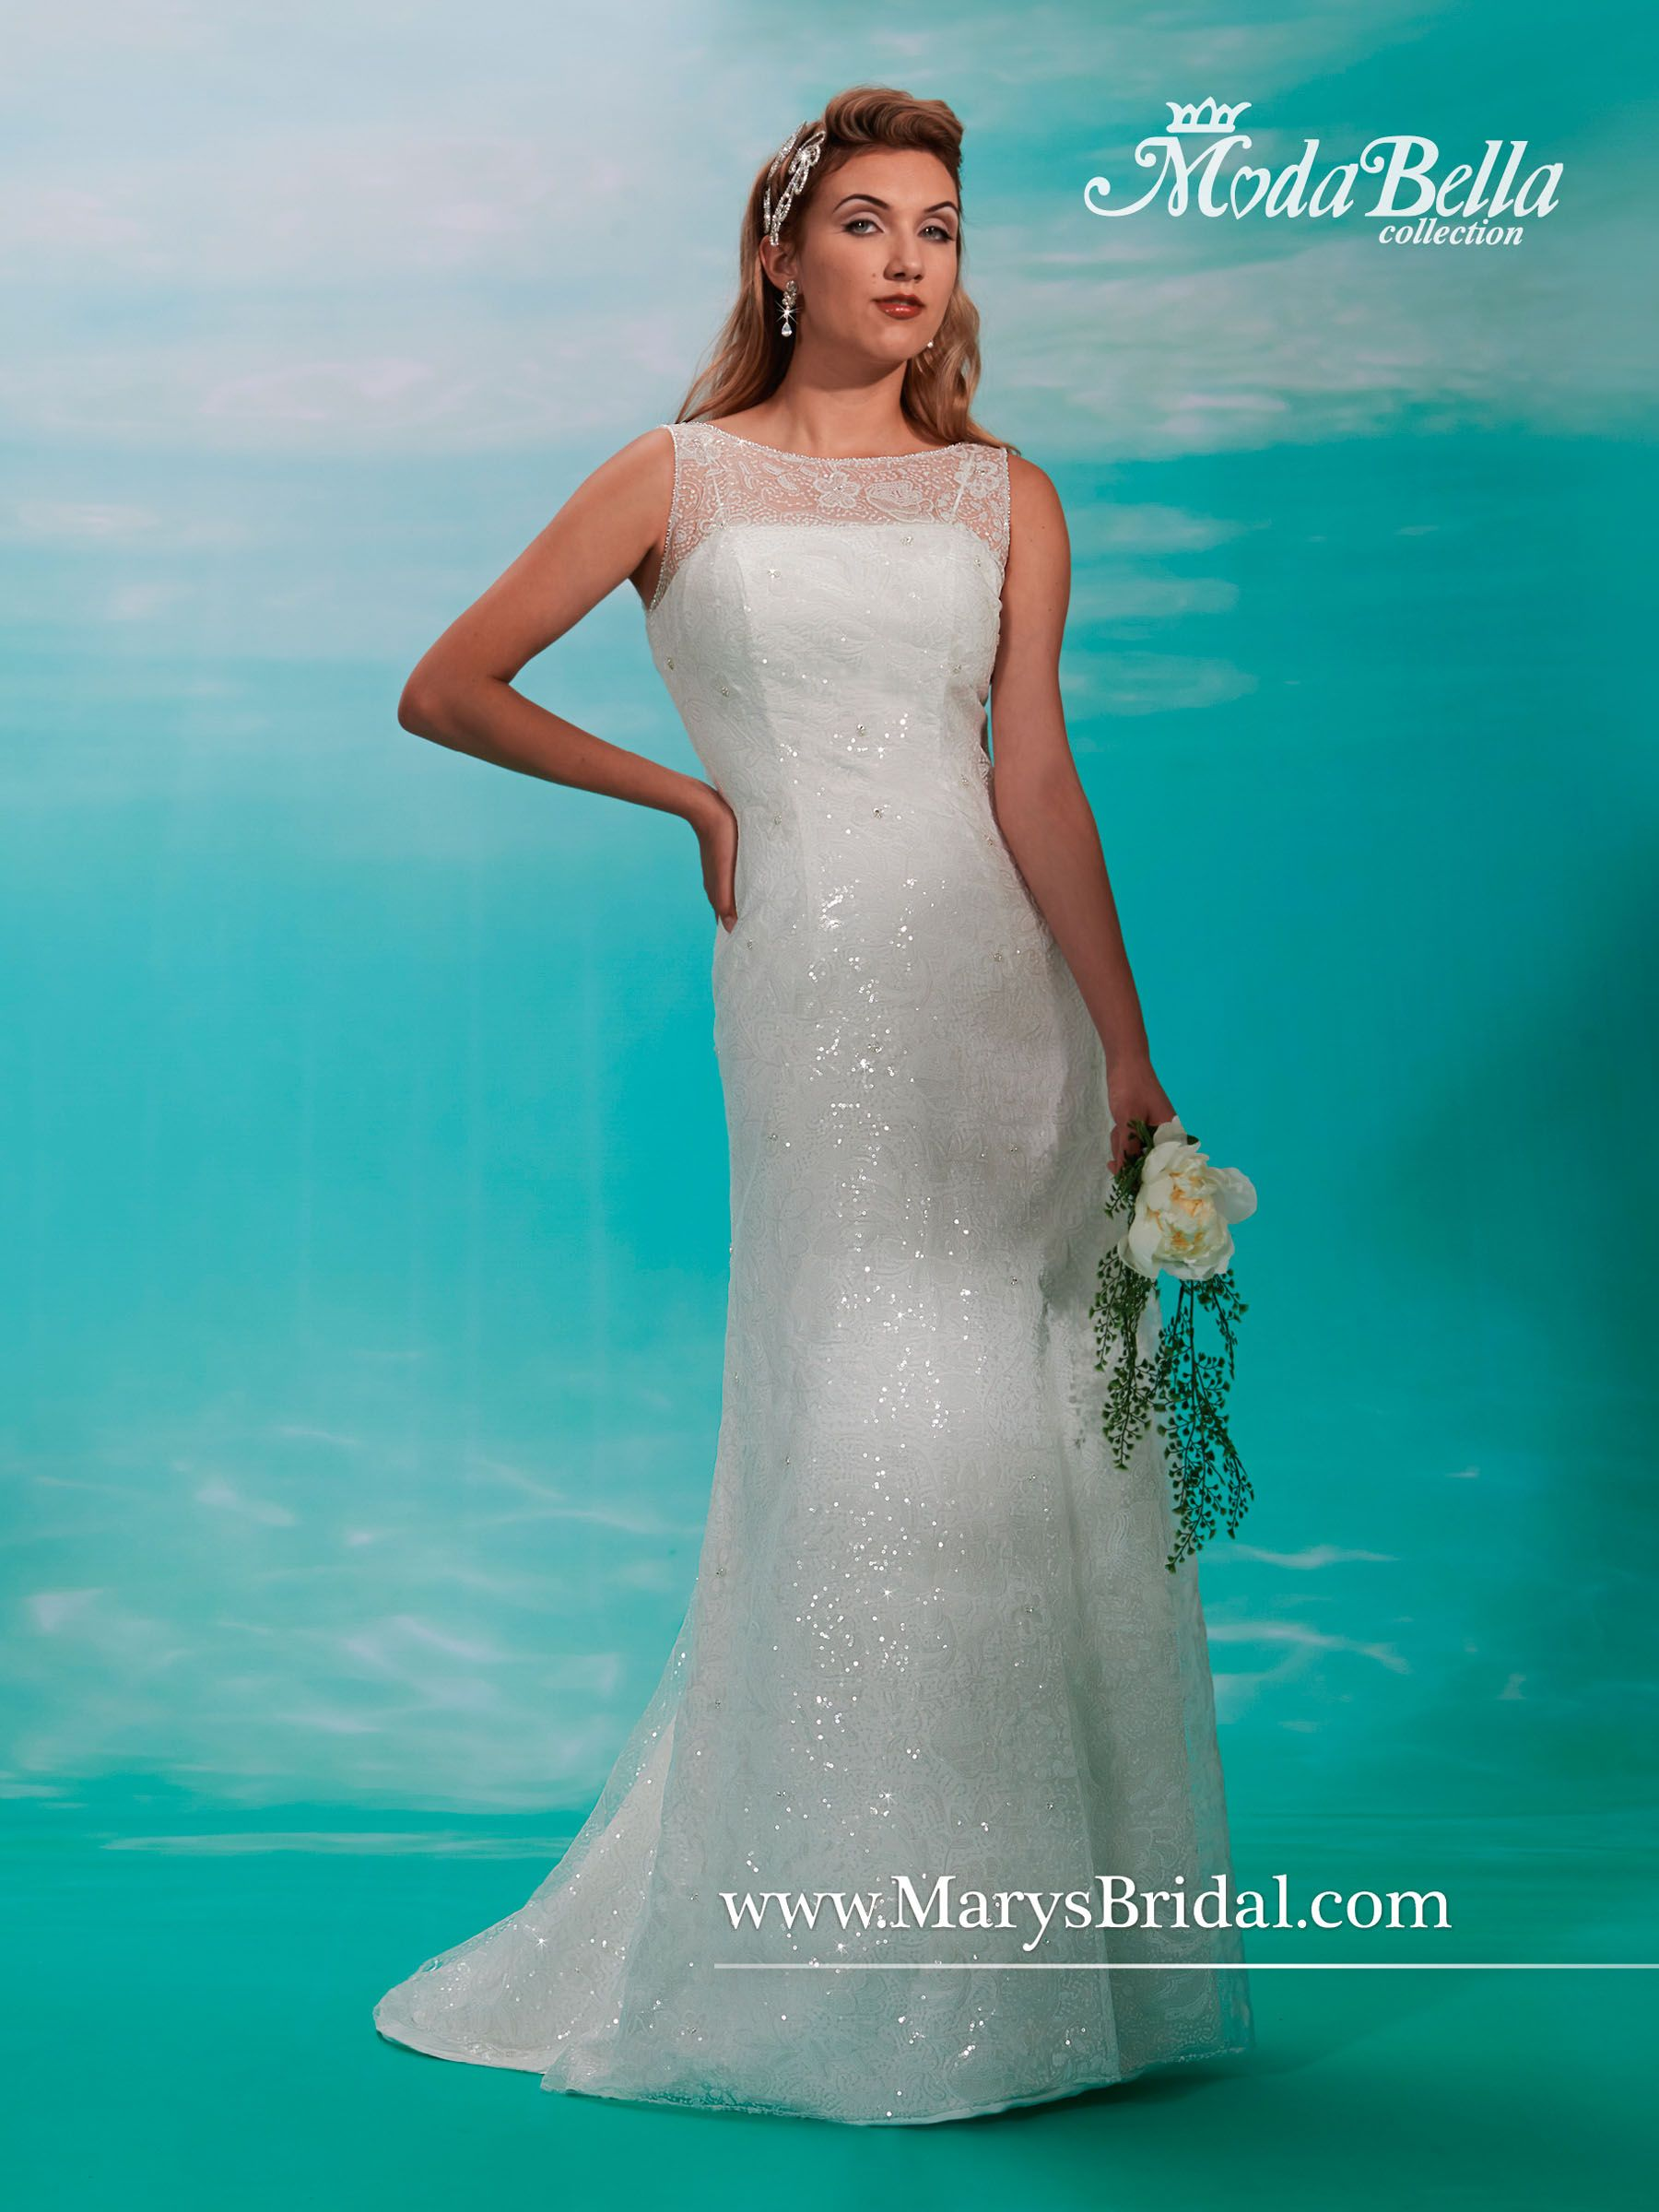 Want to look AMAZING & GORGEOUS ON YOUR BIG DAY? Get a MODA BELLA ...